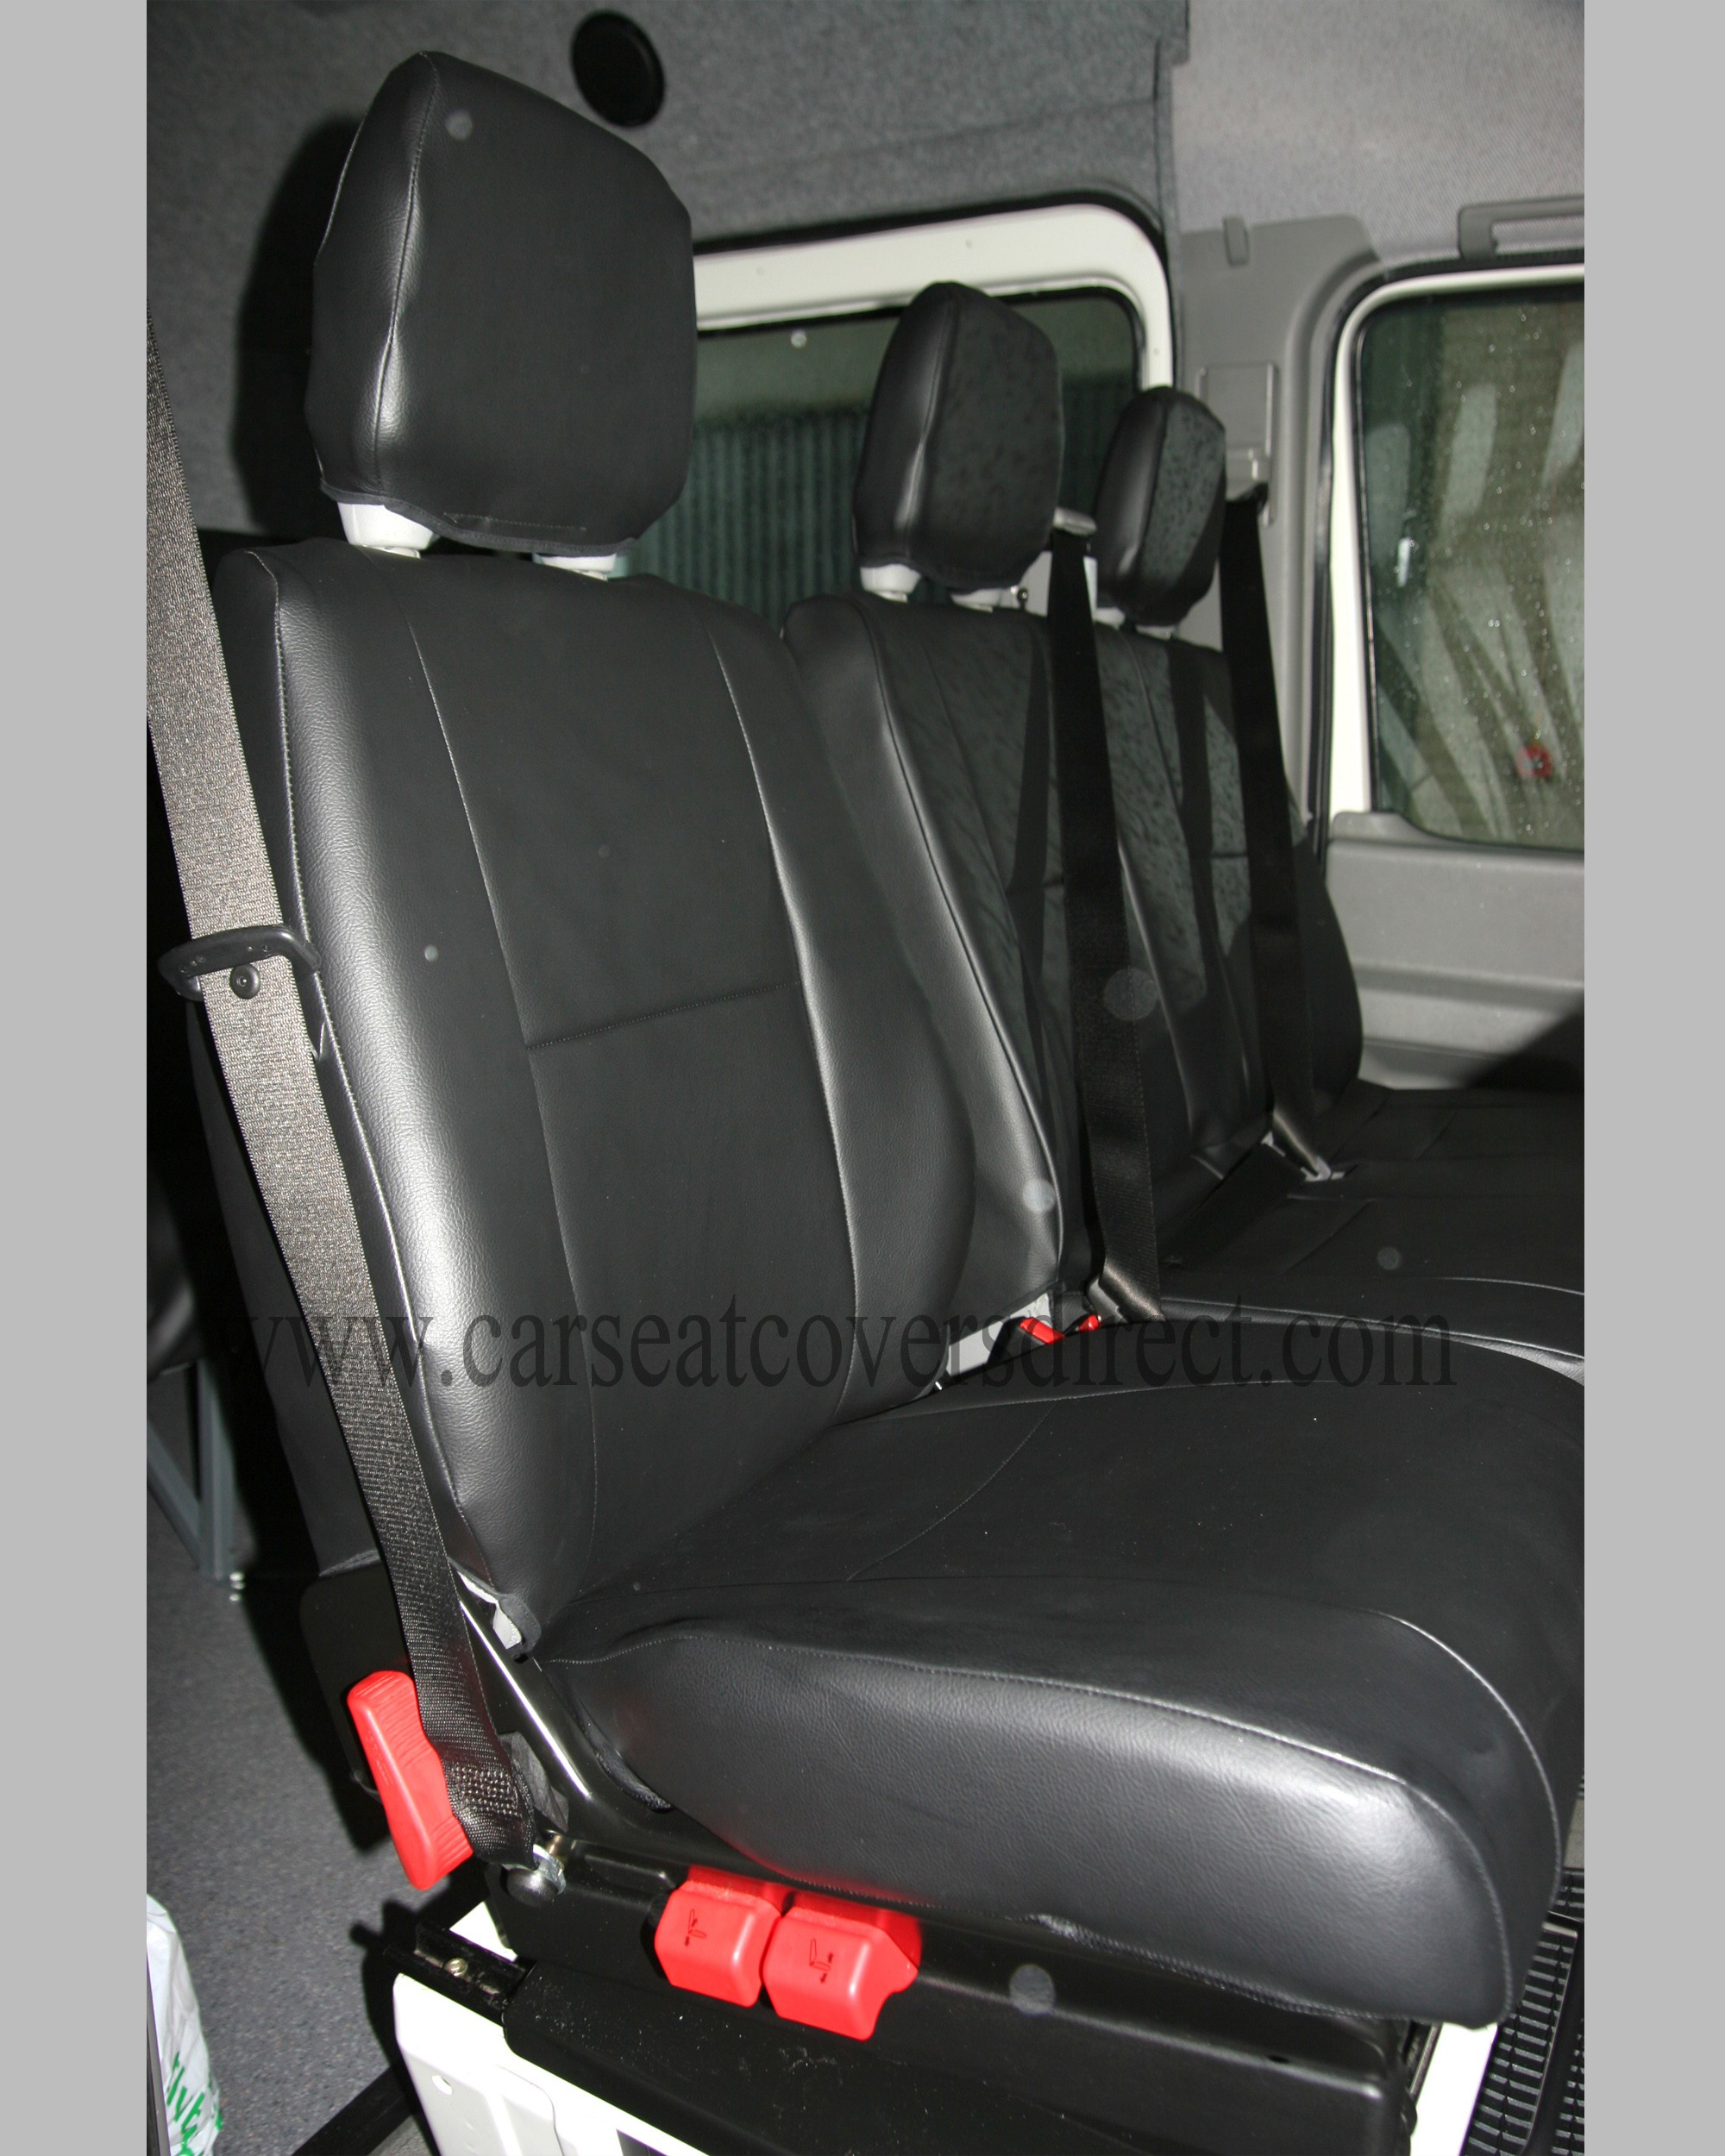 VOLKSWAGEN VW LT 35 Seat Covers